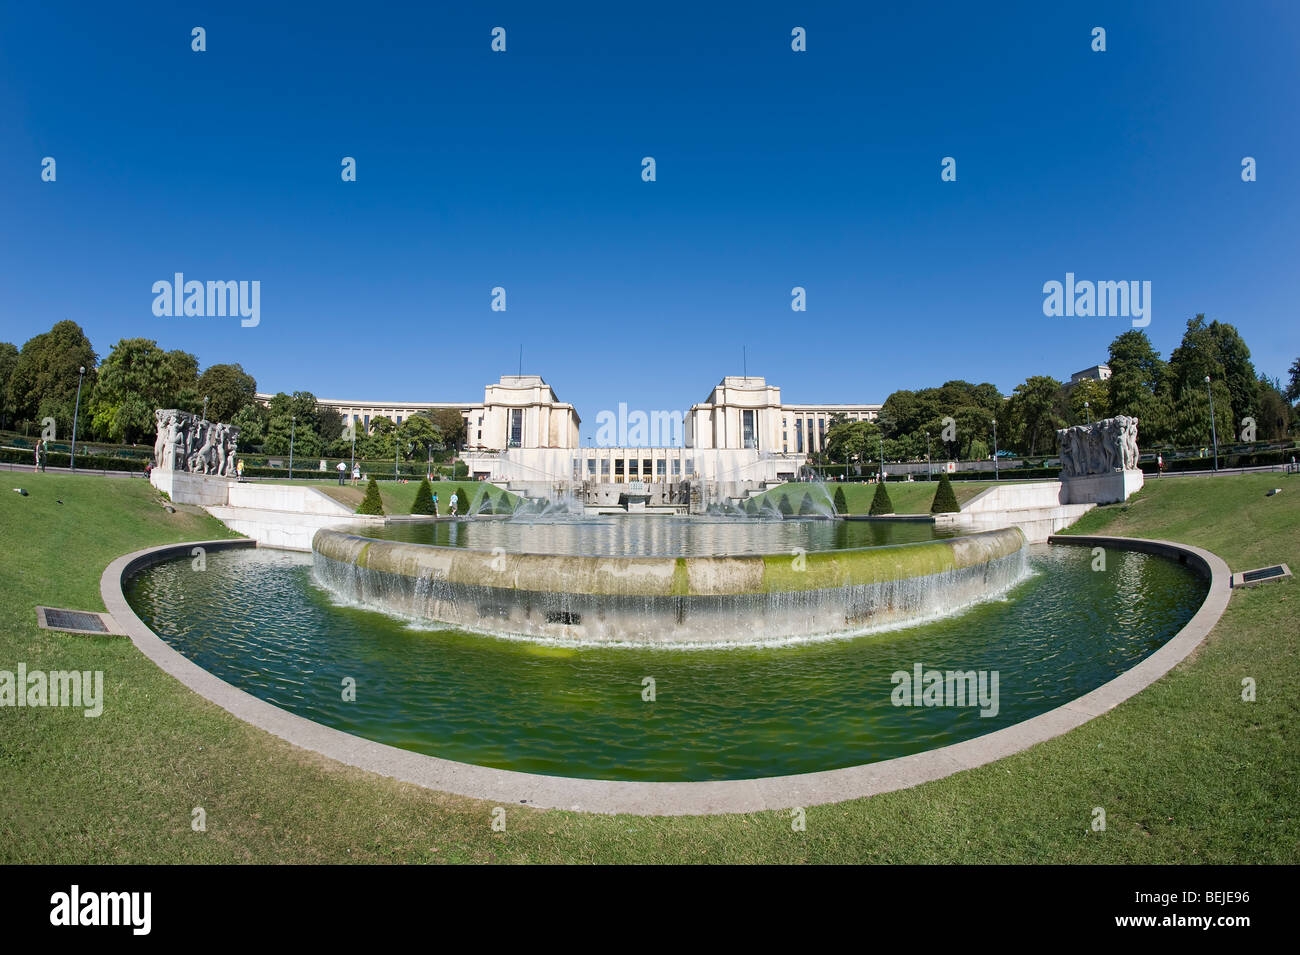 Fountains of the Trocadero Gardens, Paris, France - Stock Image